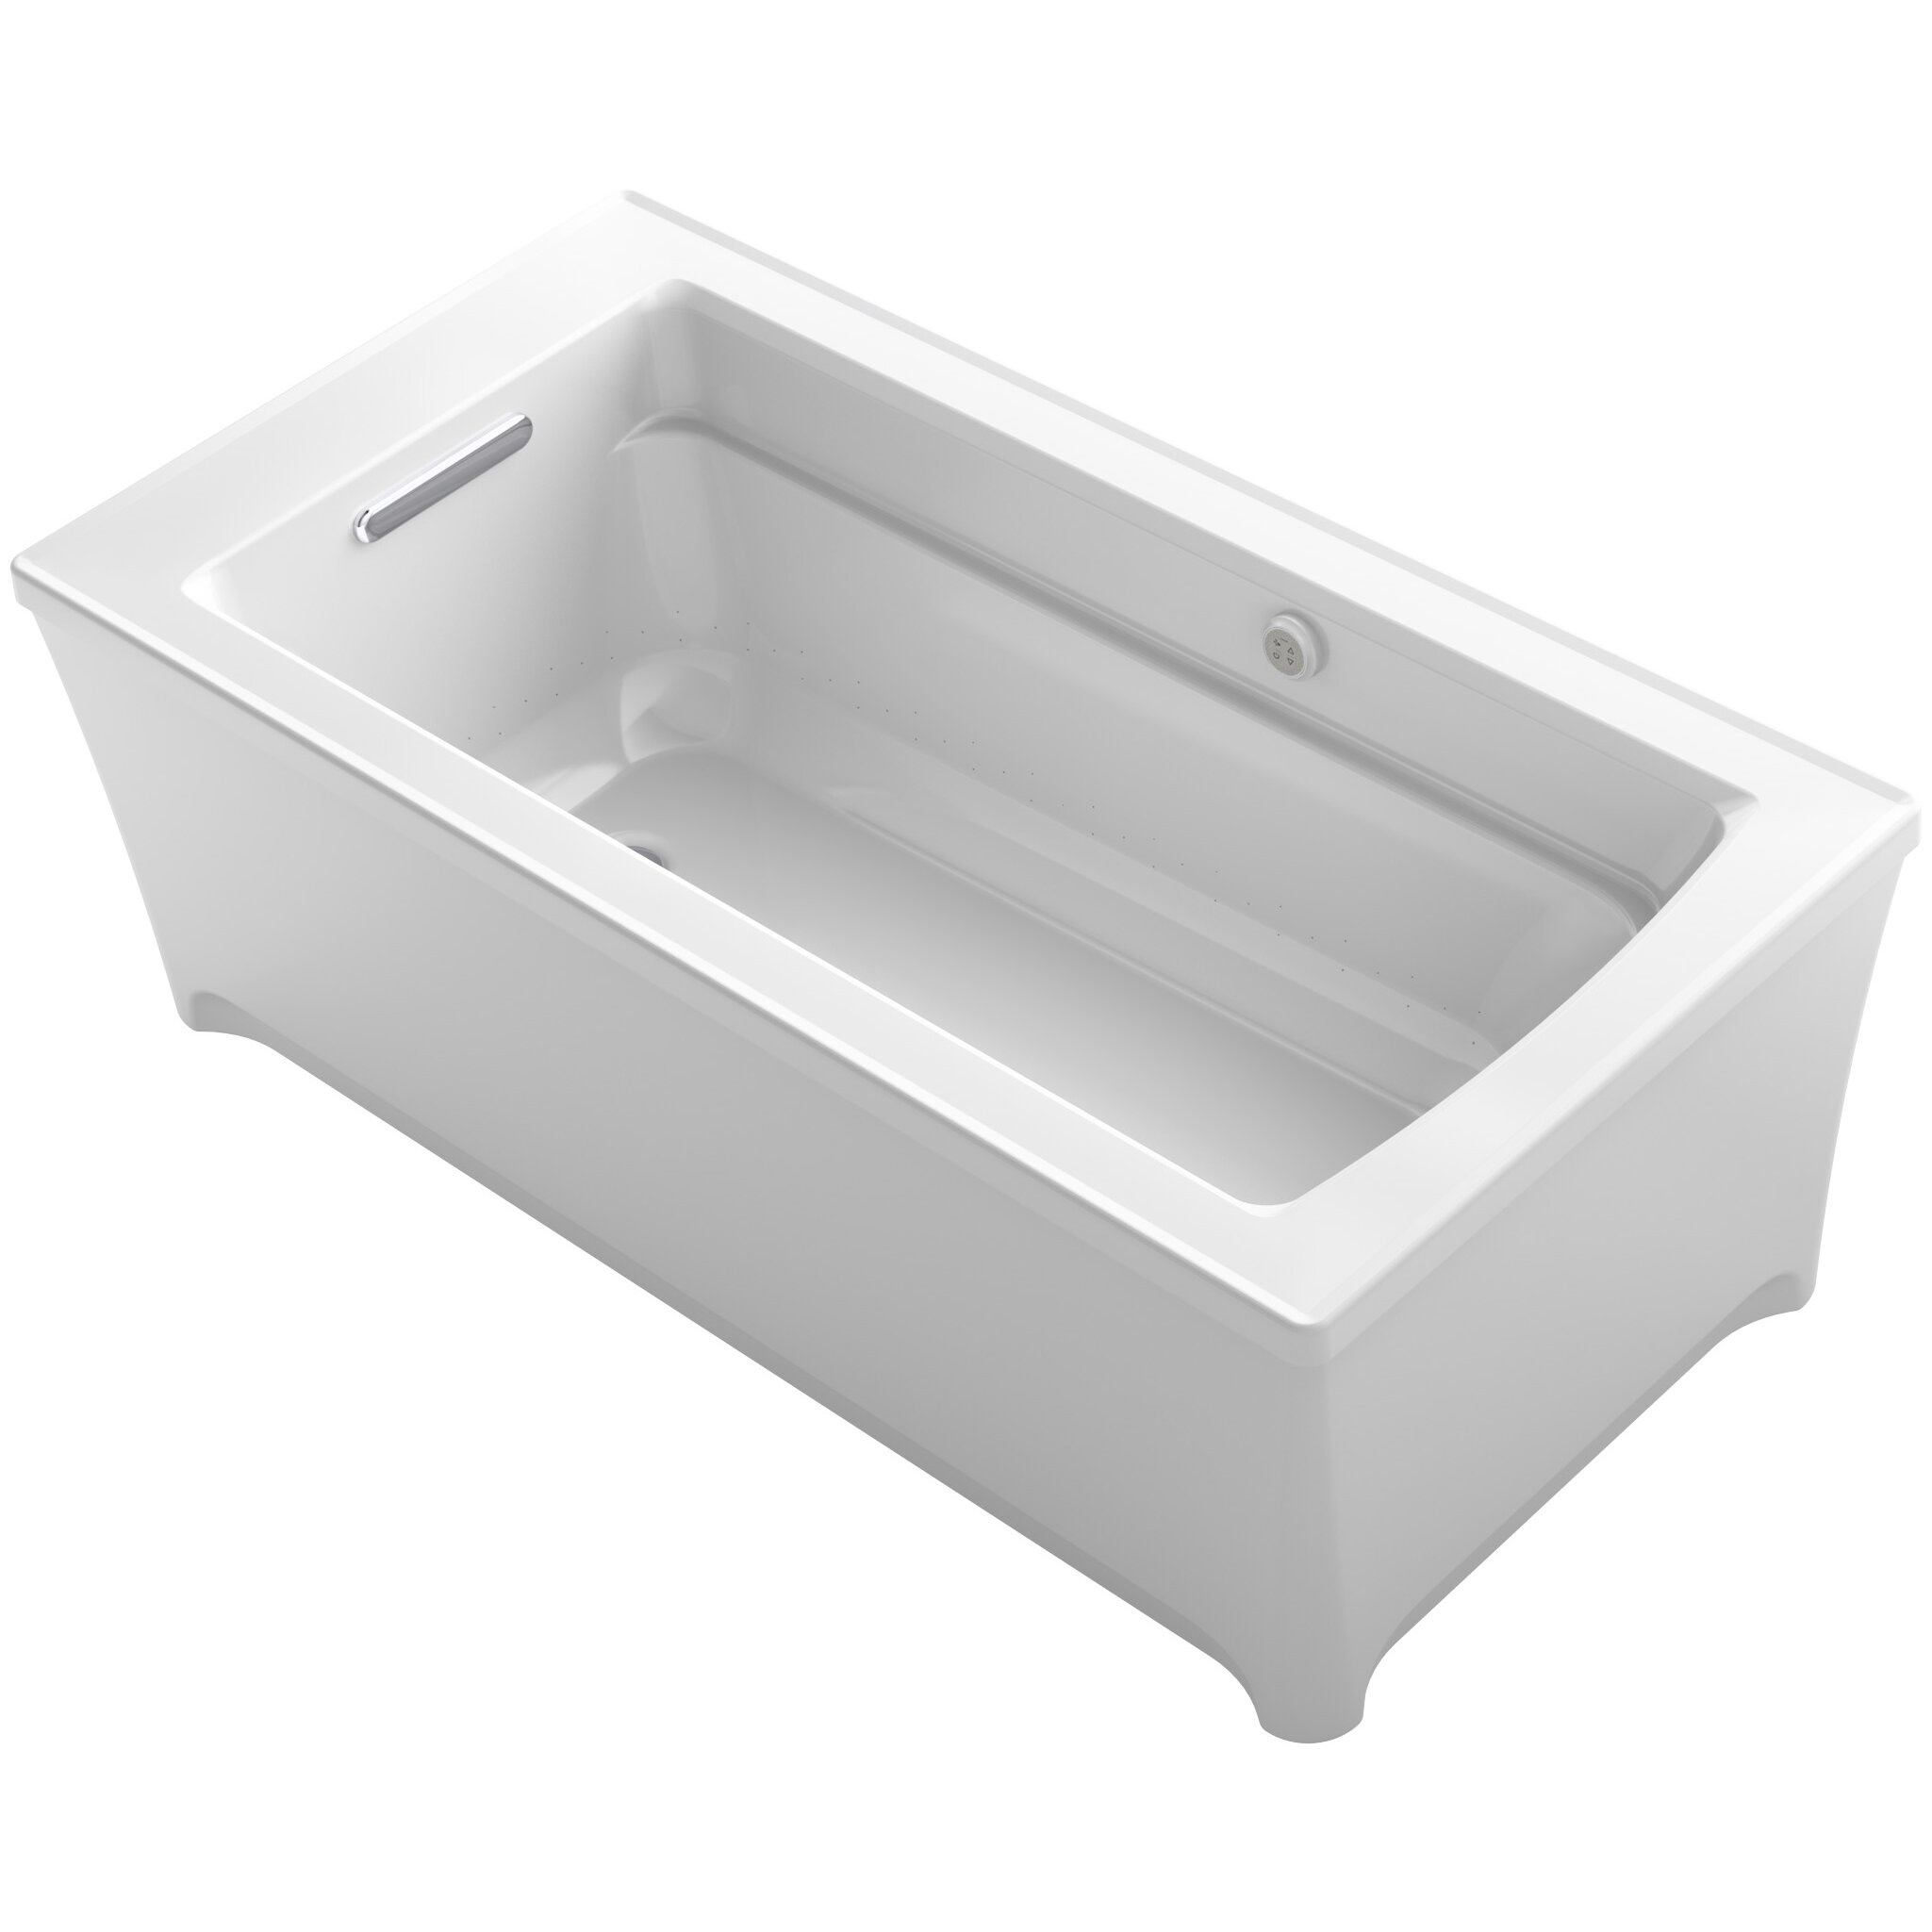 tub cheap bathtubs alcove jacuzzi cast bathing bathtub dog whirl freestanding shower steel outstanding impressive comfy with iron oval lowes whirlpool clawfoot walk tubs soaker bellwether stainless kohler then porcelain